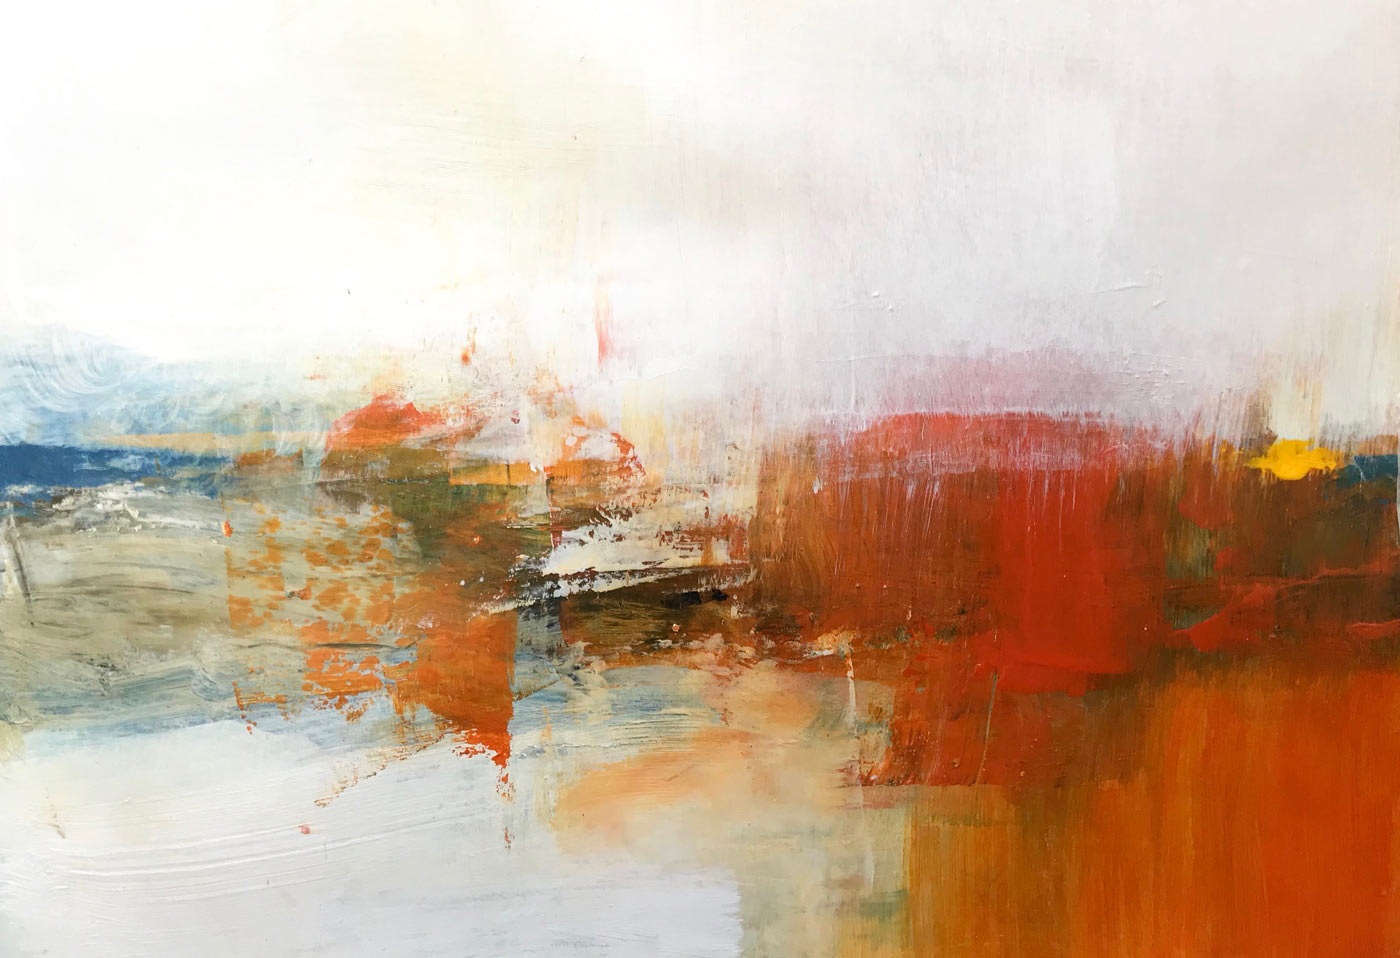 https://neilcanning.com/wp-content/uploads/sites/3/2021/08/Earth-Song-Estuary-by-Neil-Canning-at-Martin-Tinney-Gallery-Cardiff.jpg